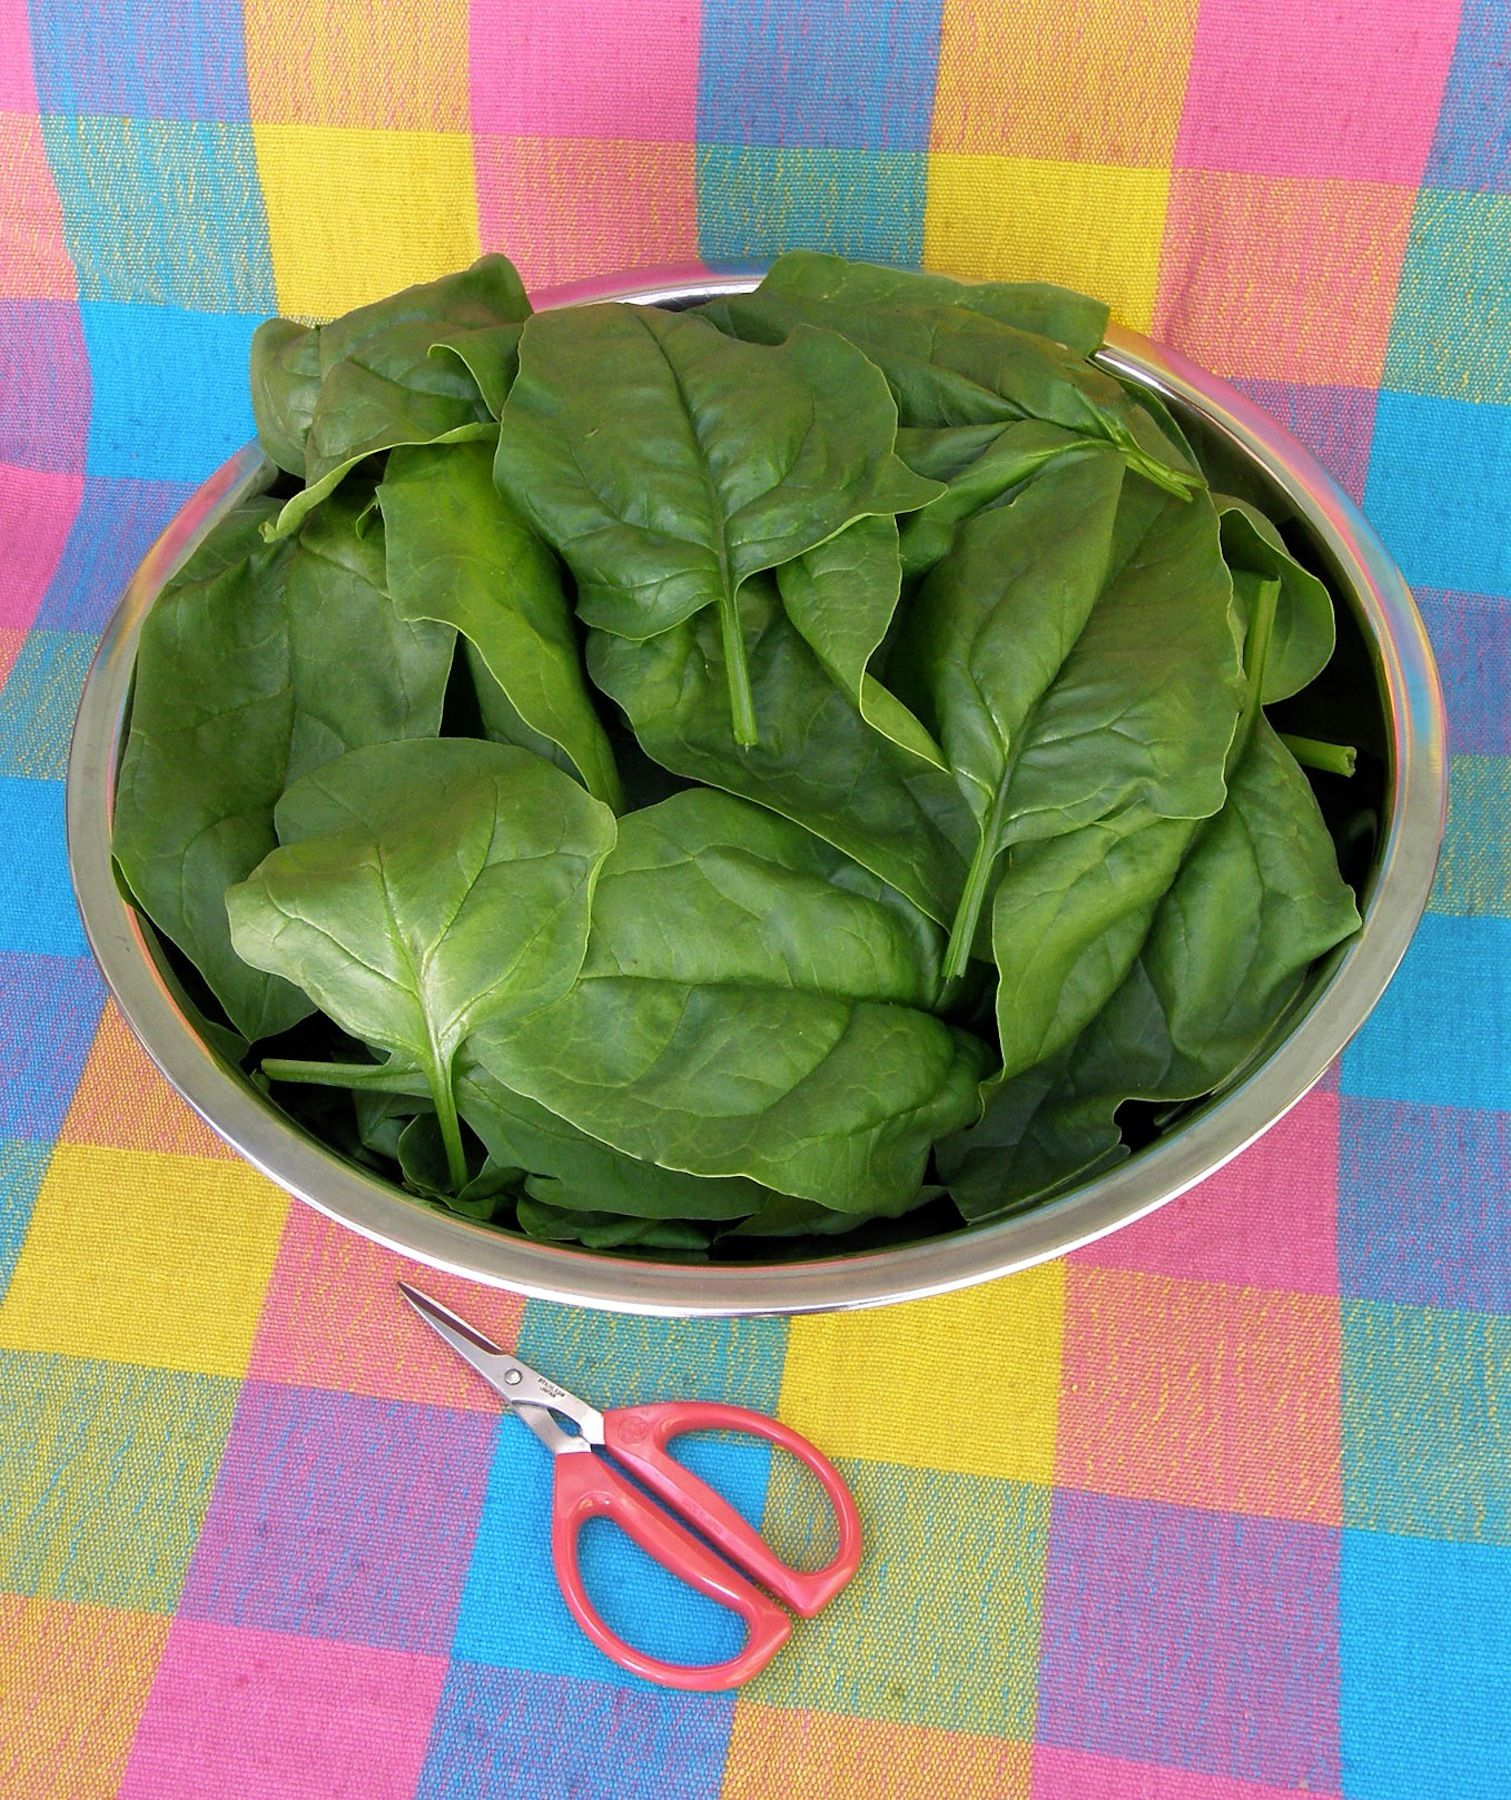 certified organic longstanding spinach gangbusters exclusive to